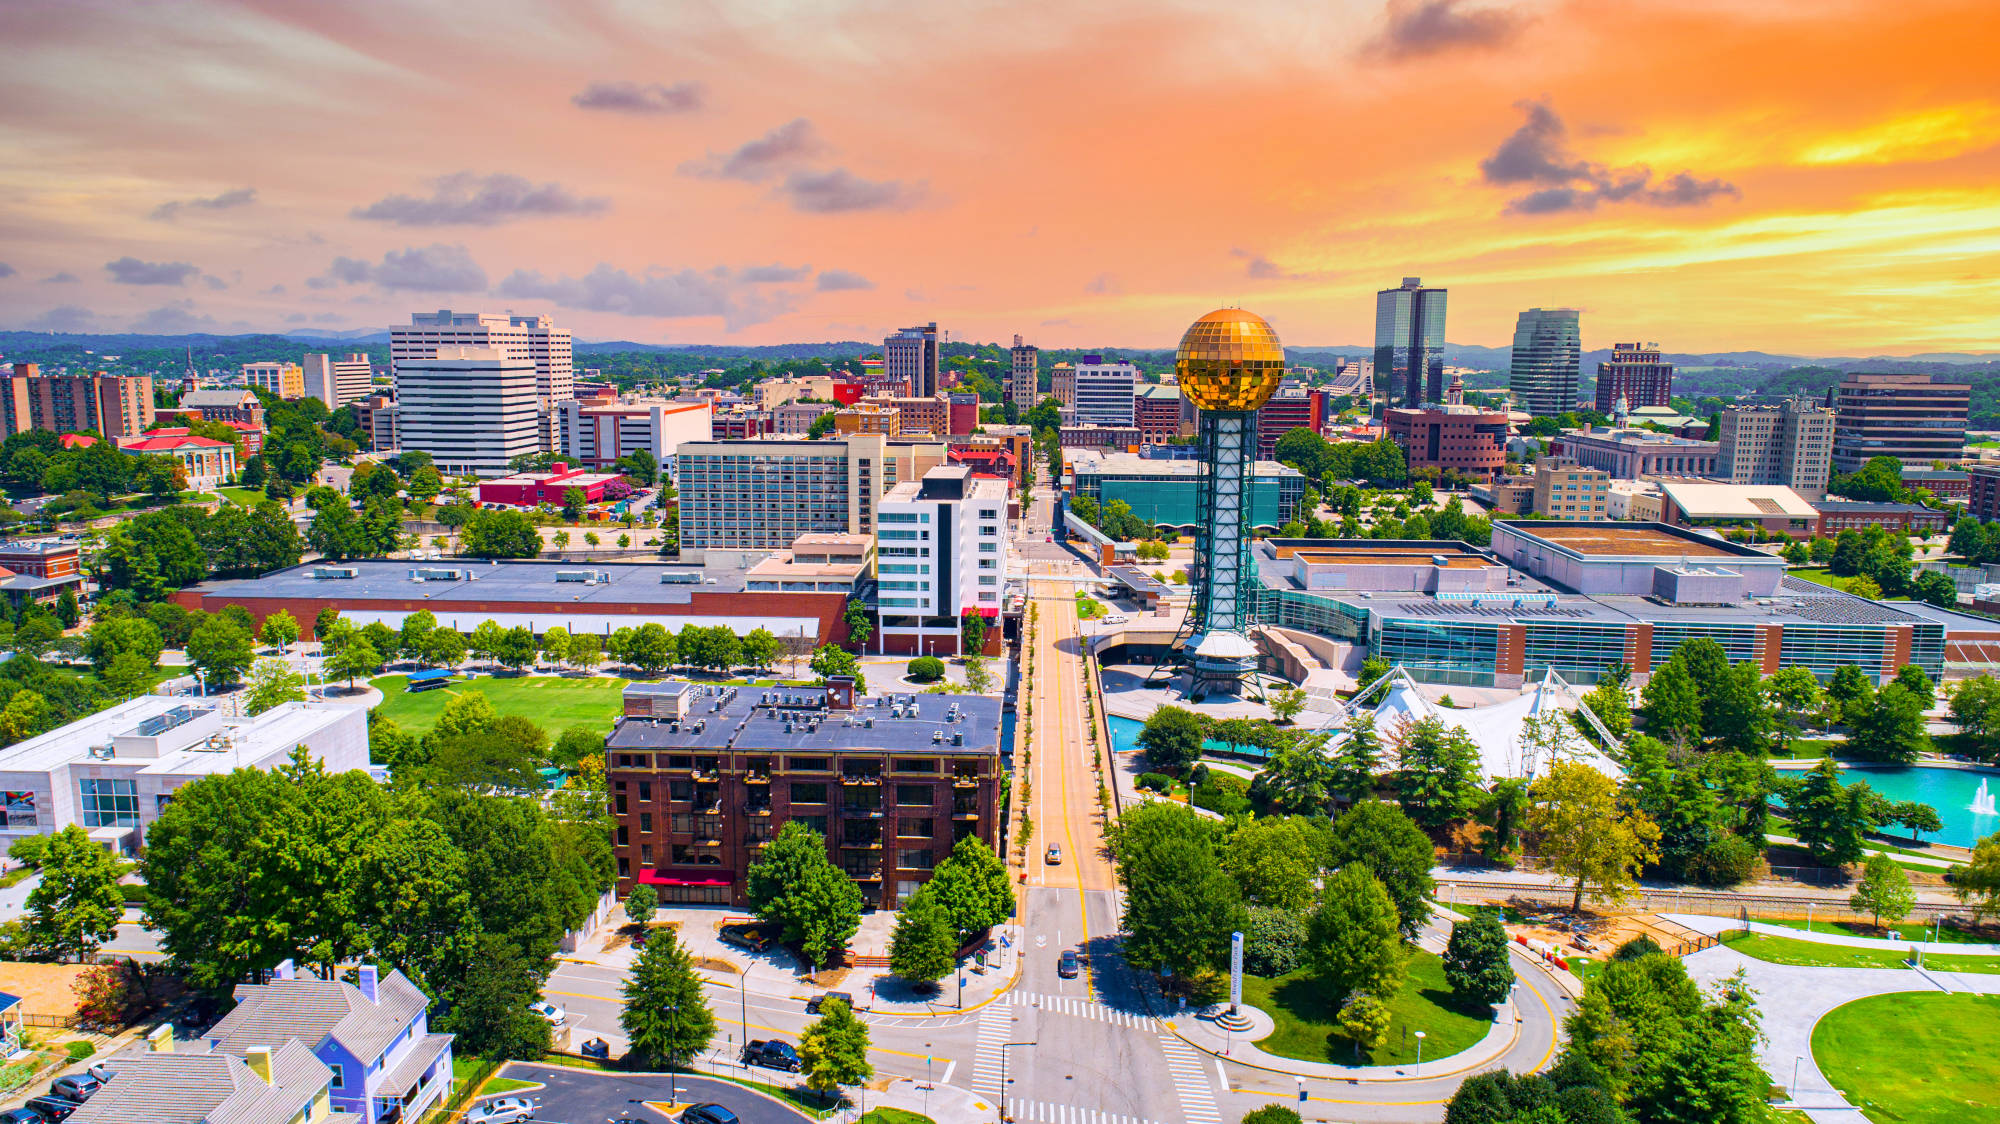 Image of downtown Knoxville with enhanced colors - lush green grass, shiny buildings, and beautiful sunset sky with orange and purple hues.